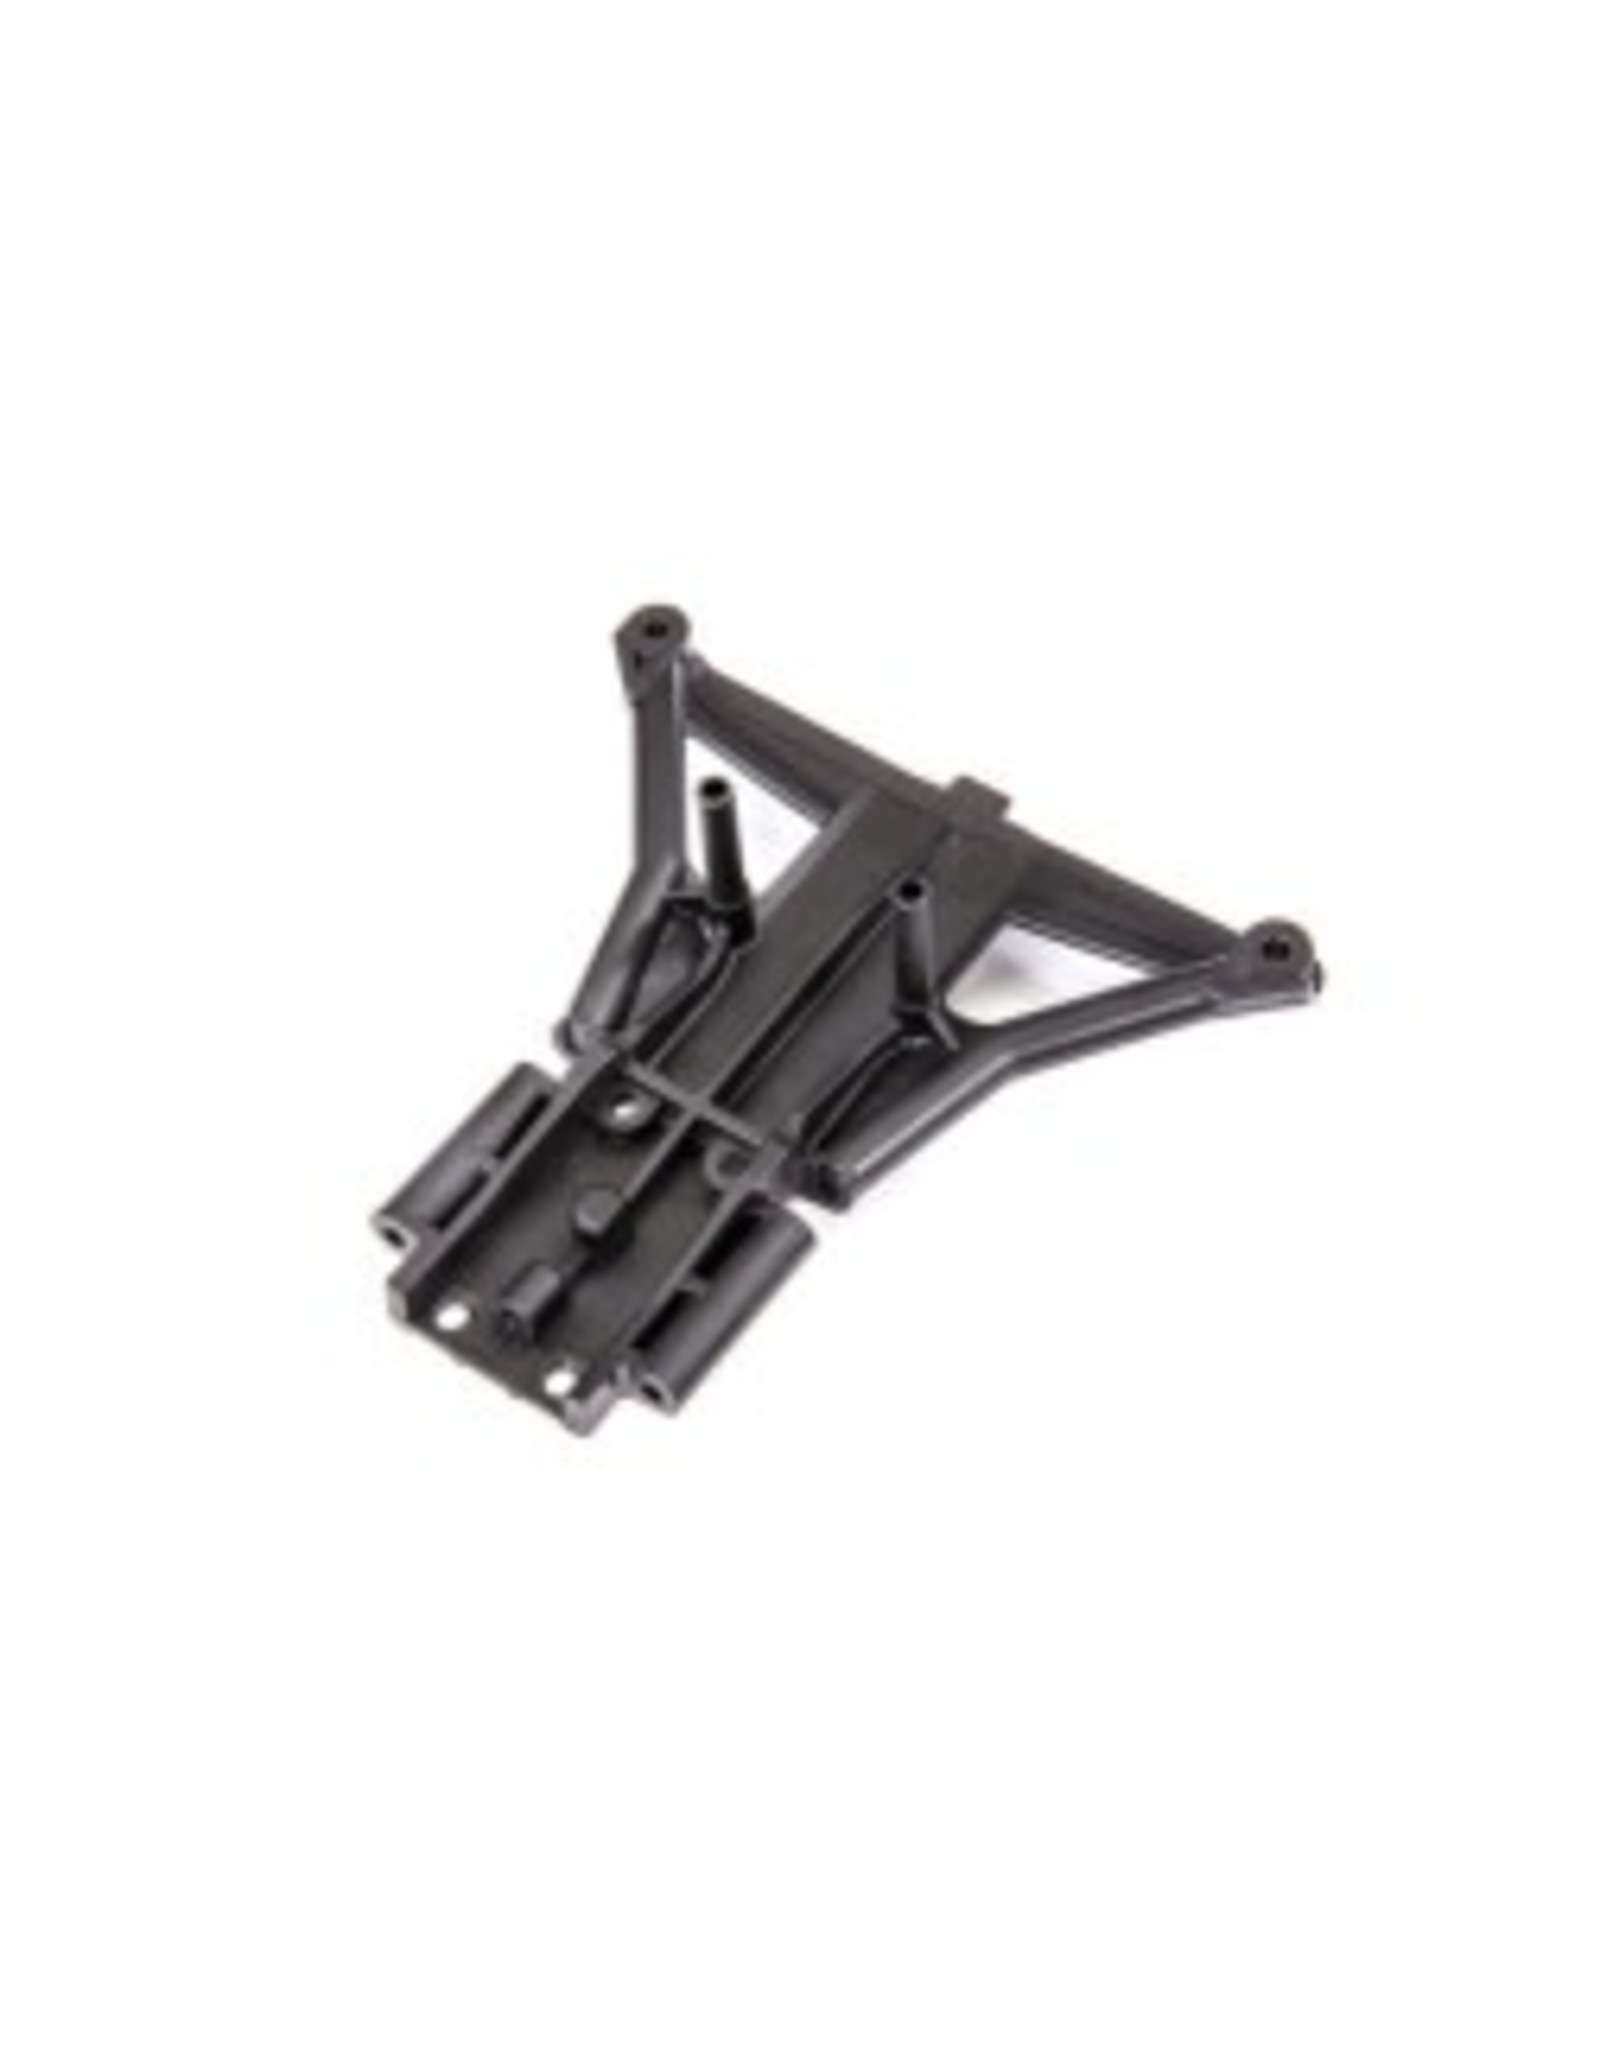 Traxxas Bulkhead Front for 7430